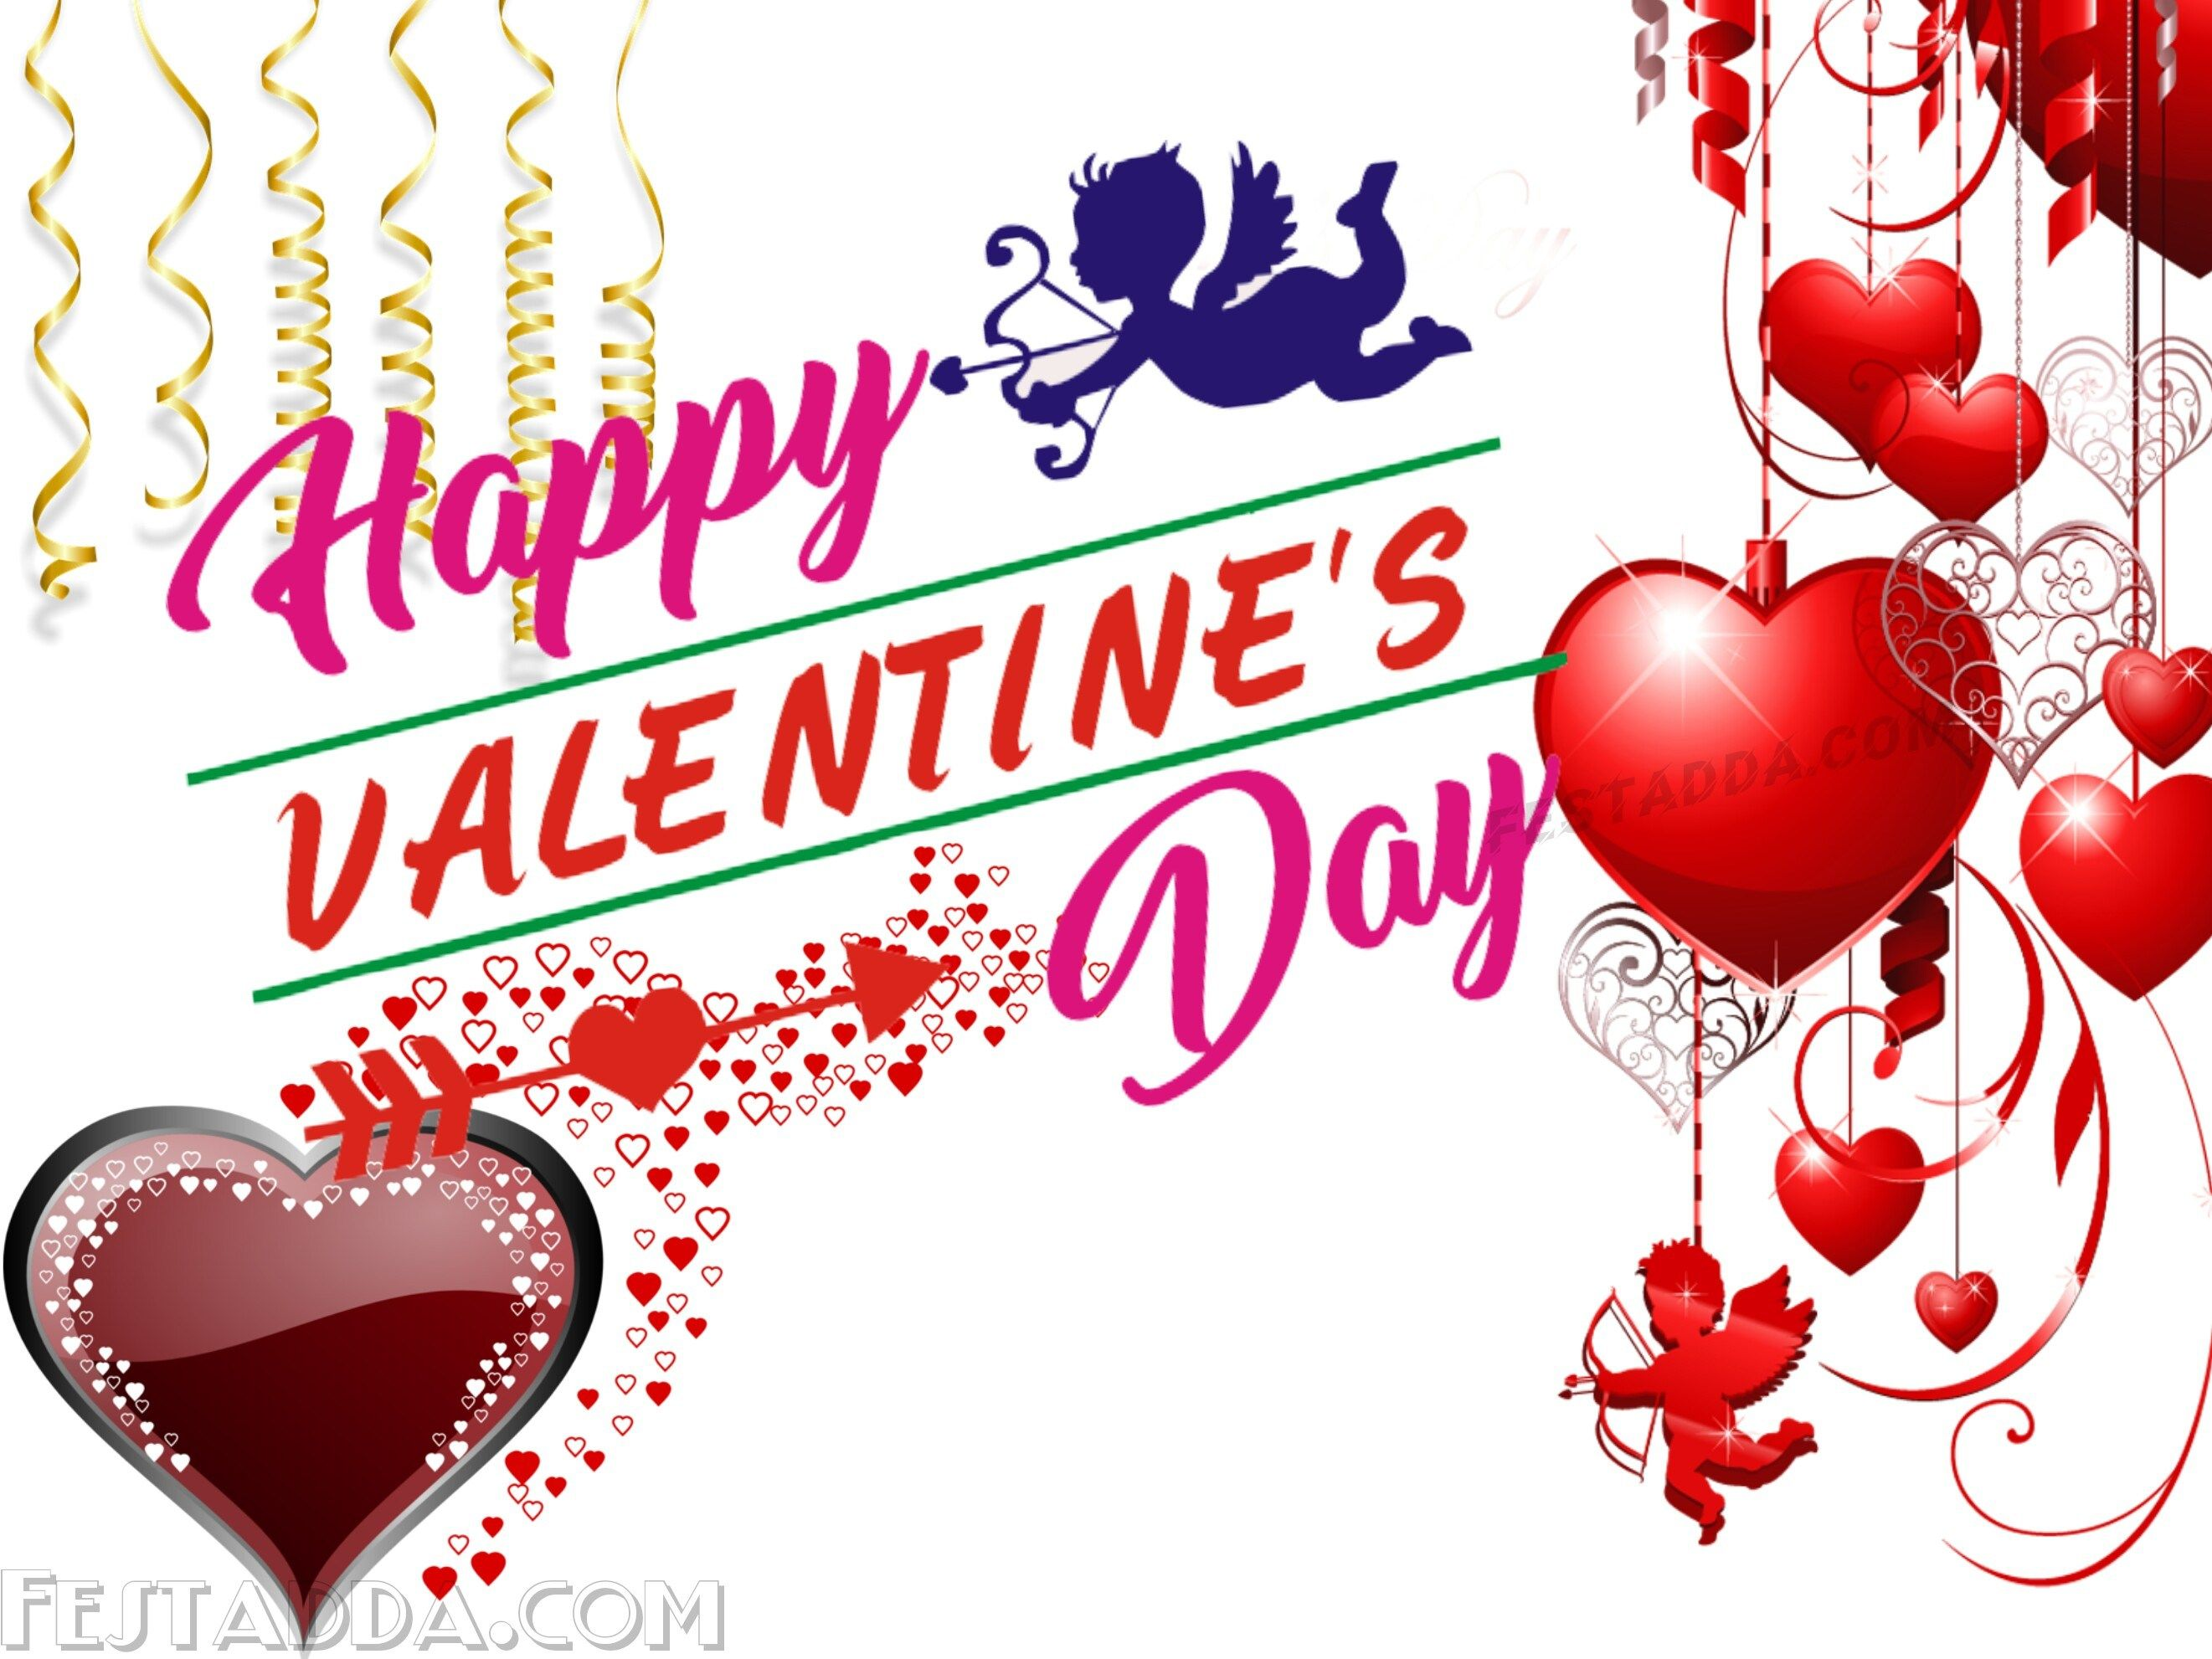 Valentine Week List 2019 Importance Valentines Pinterest